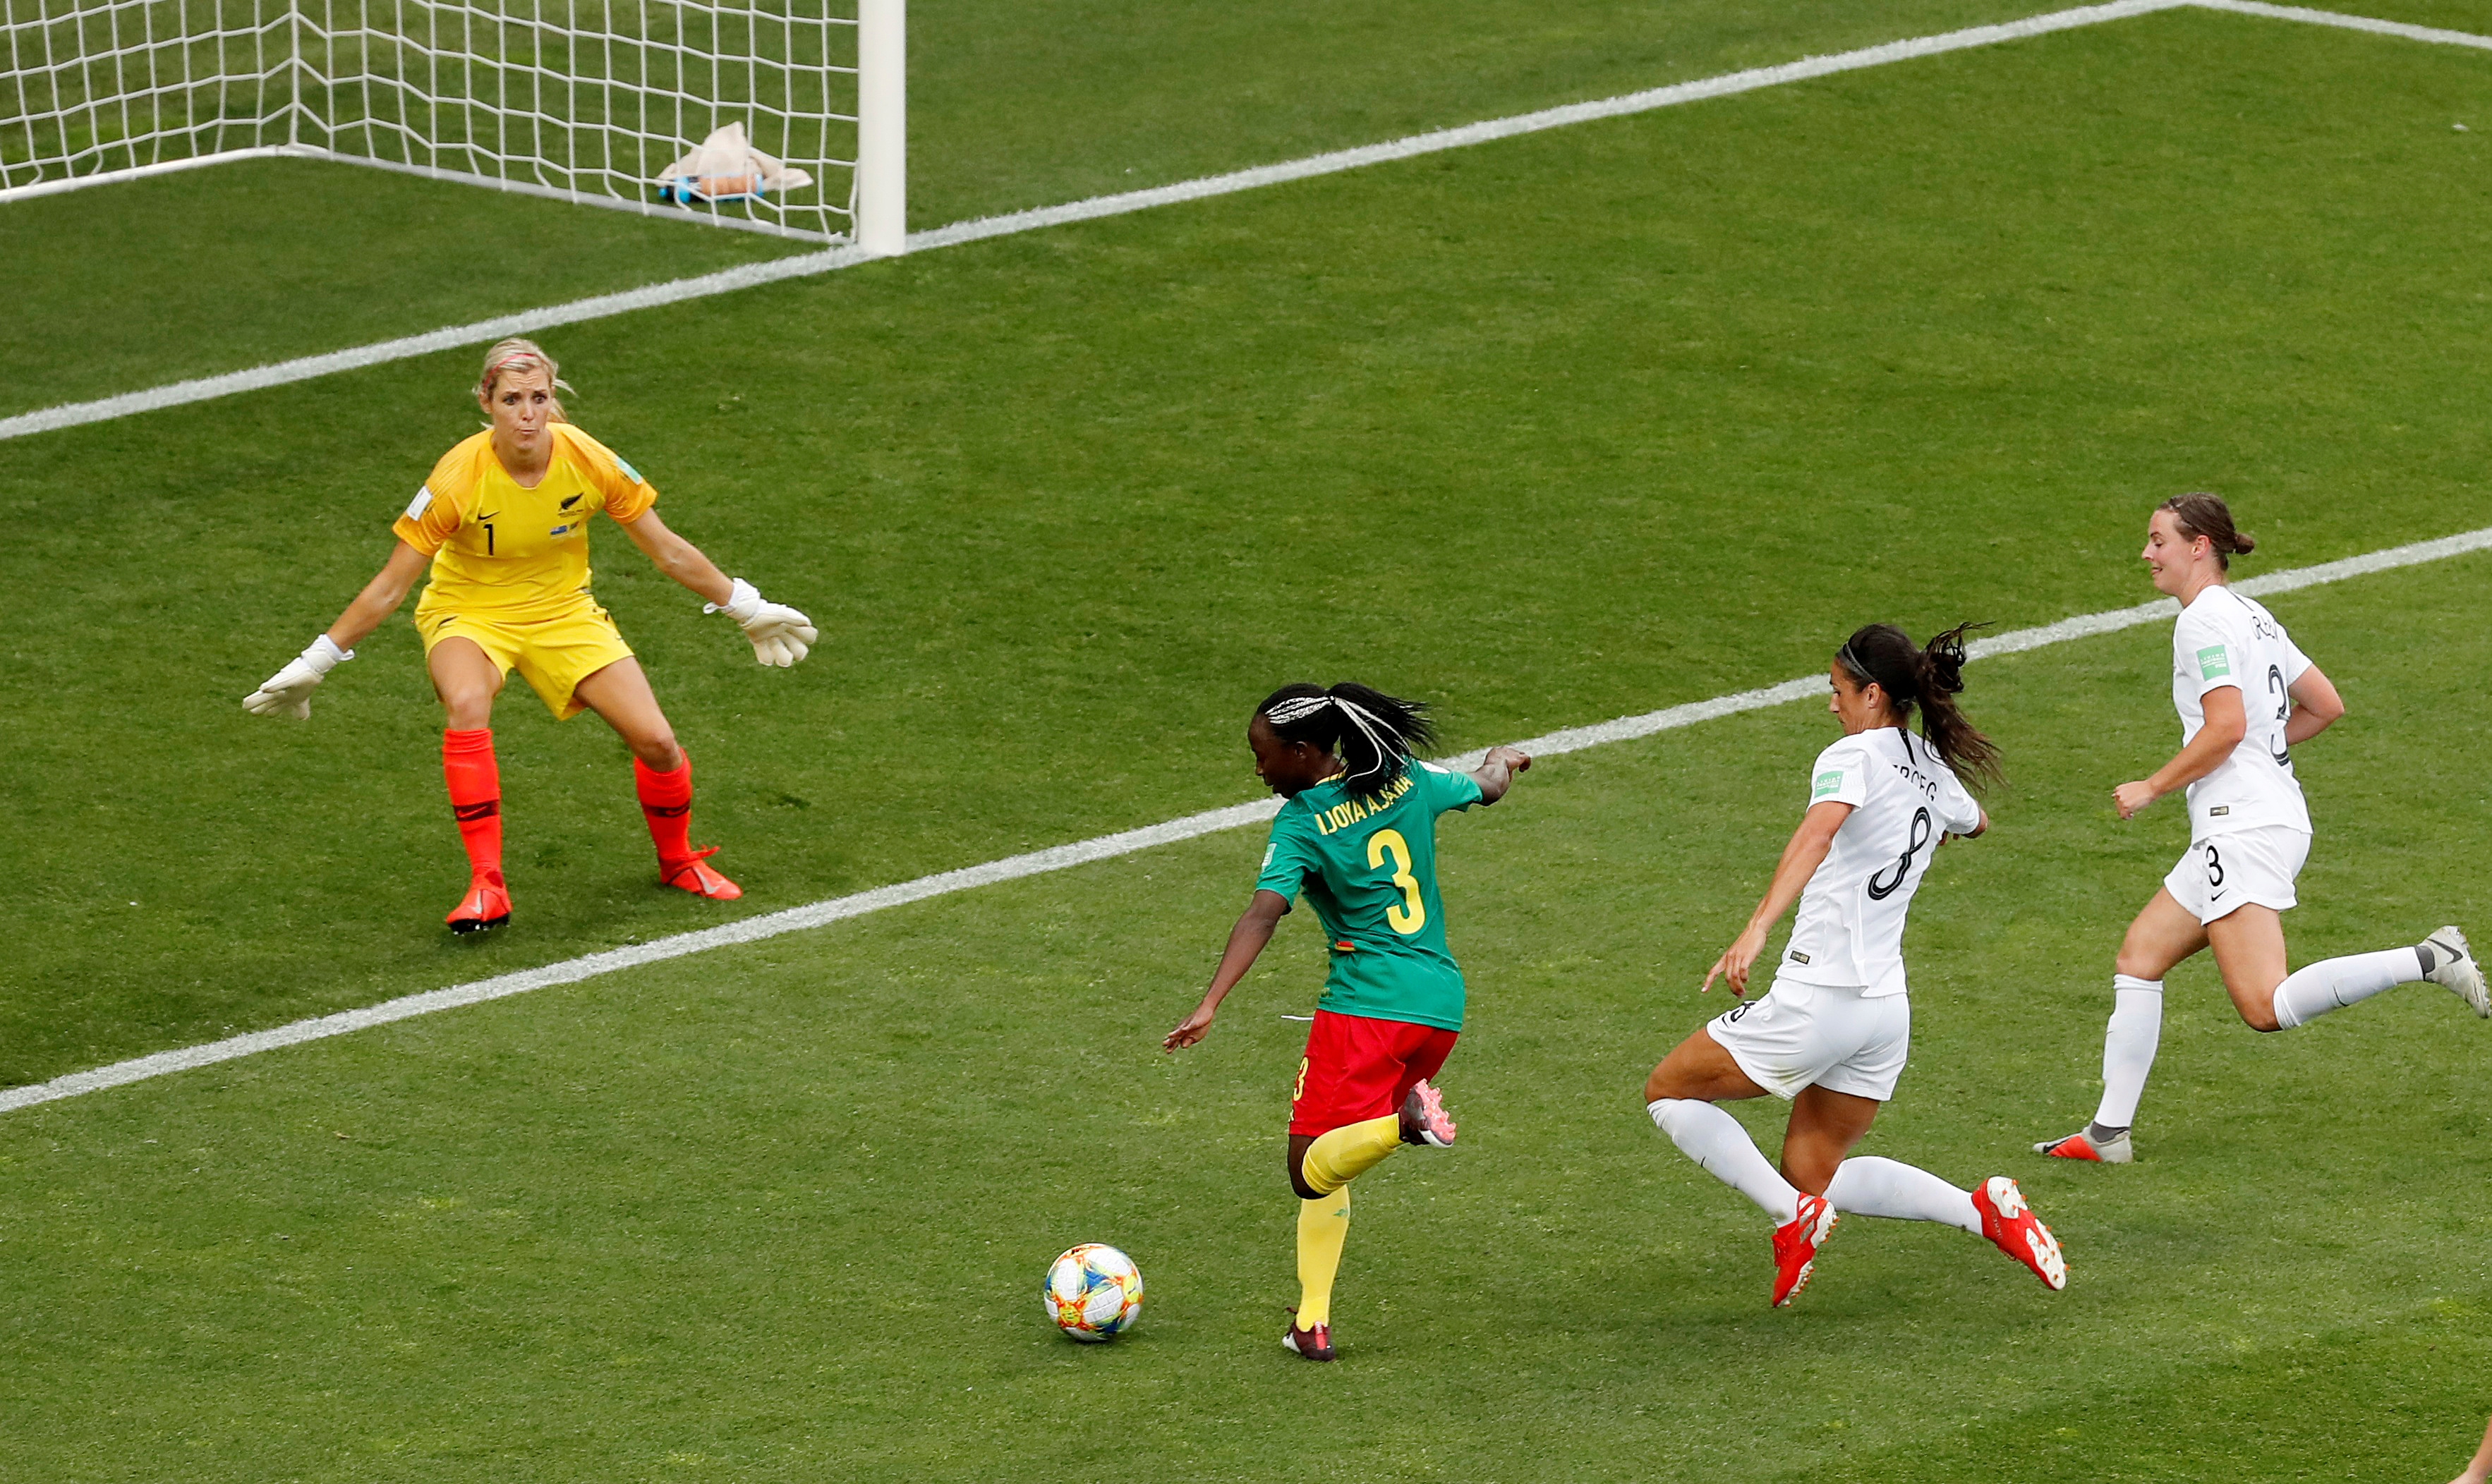 Cameroon's Ajara Nchout scoring their first goal. Photo: Reuters